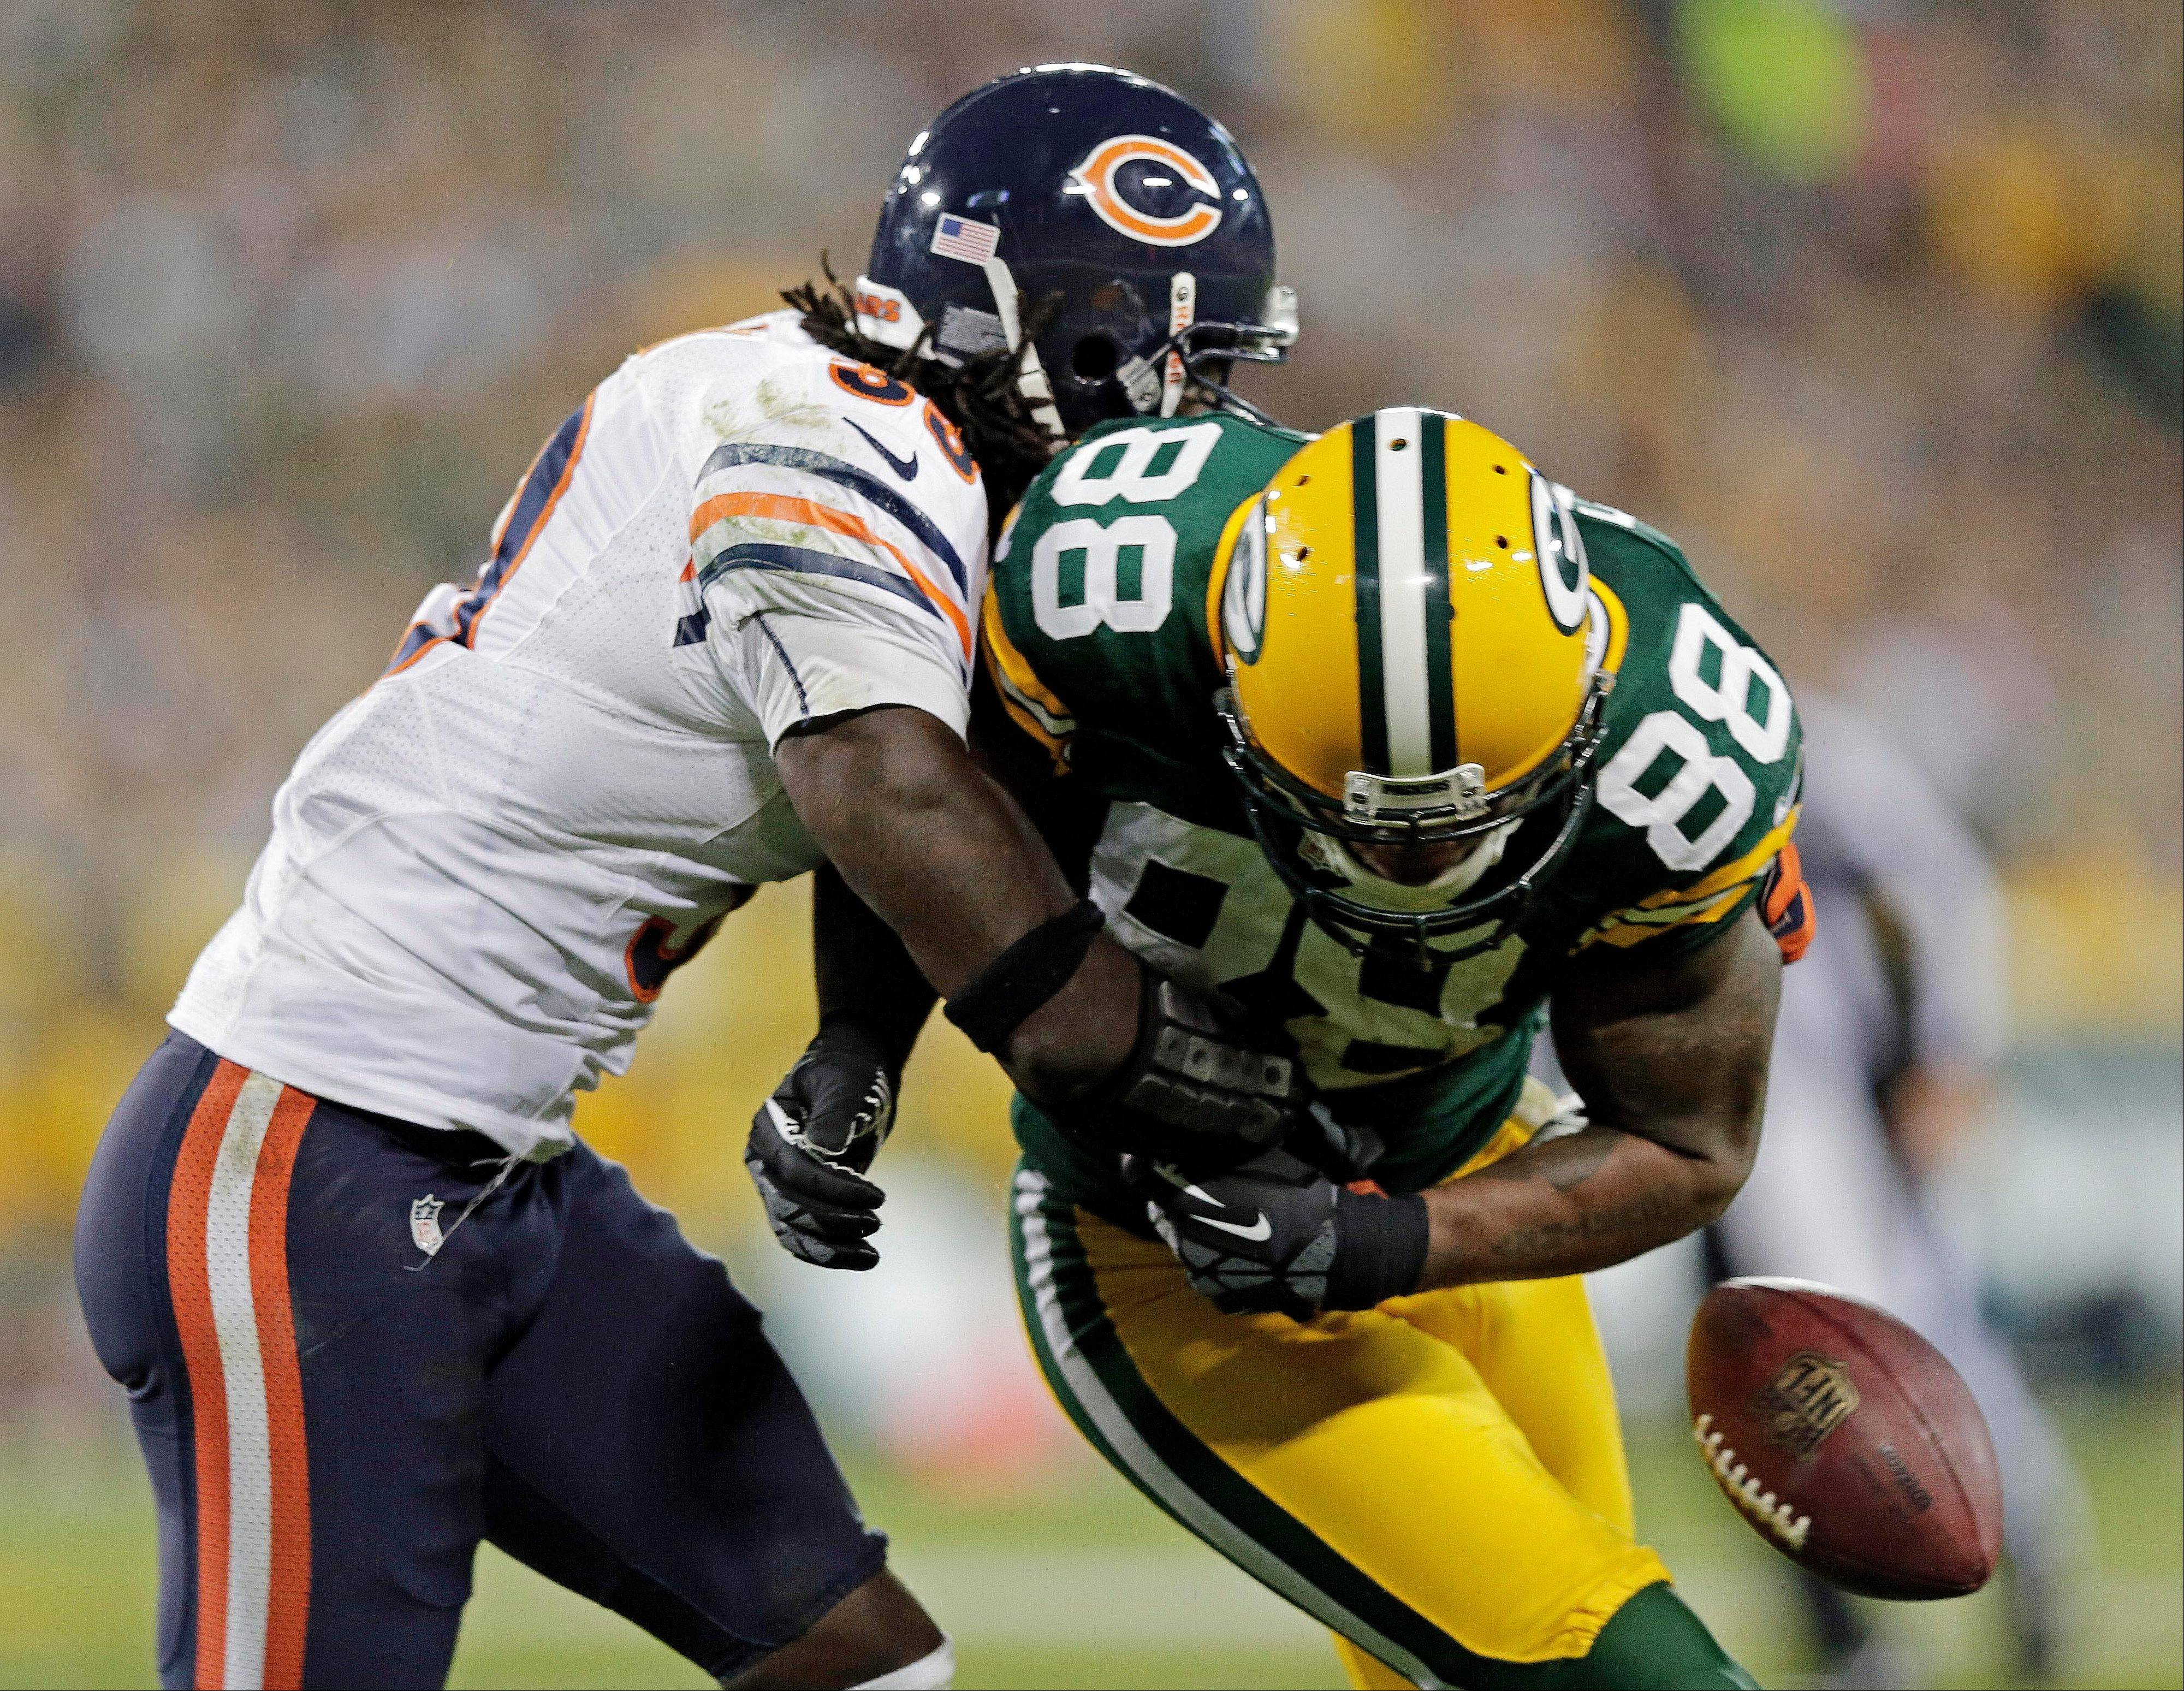 Green Bay's Jermichael Finley (88) fumbles as he is hit by Chicago Bears' Charles Tillman (33) during the second half of an NFL football game Thursday, Sept. 13, 2012, in Green Bay, Wis. The Bears recovered the fumble.